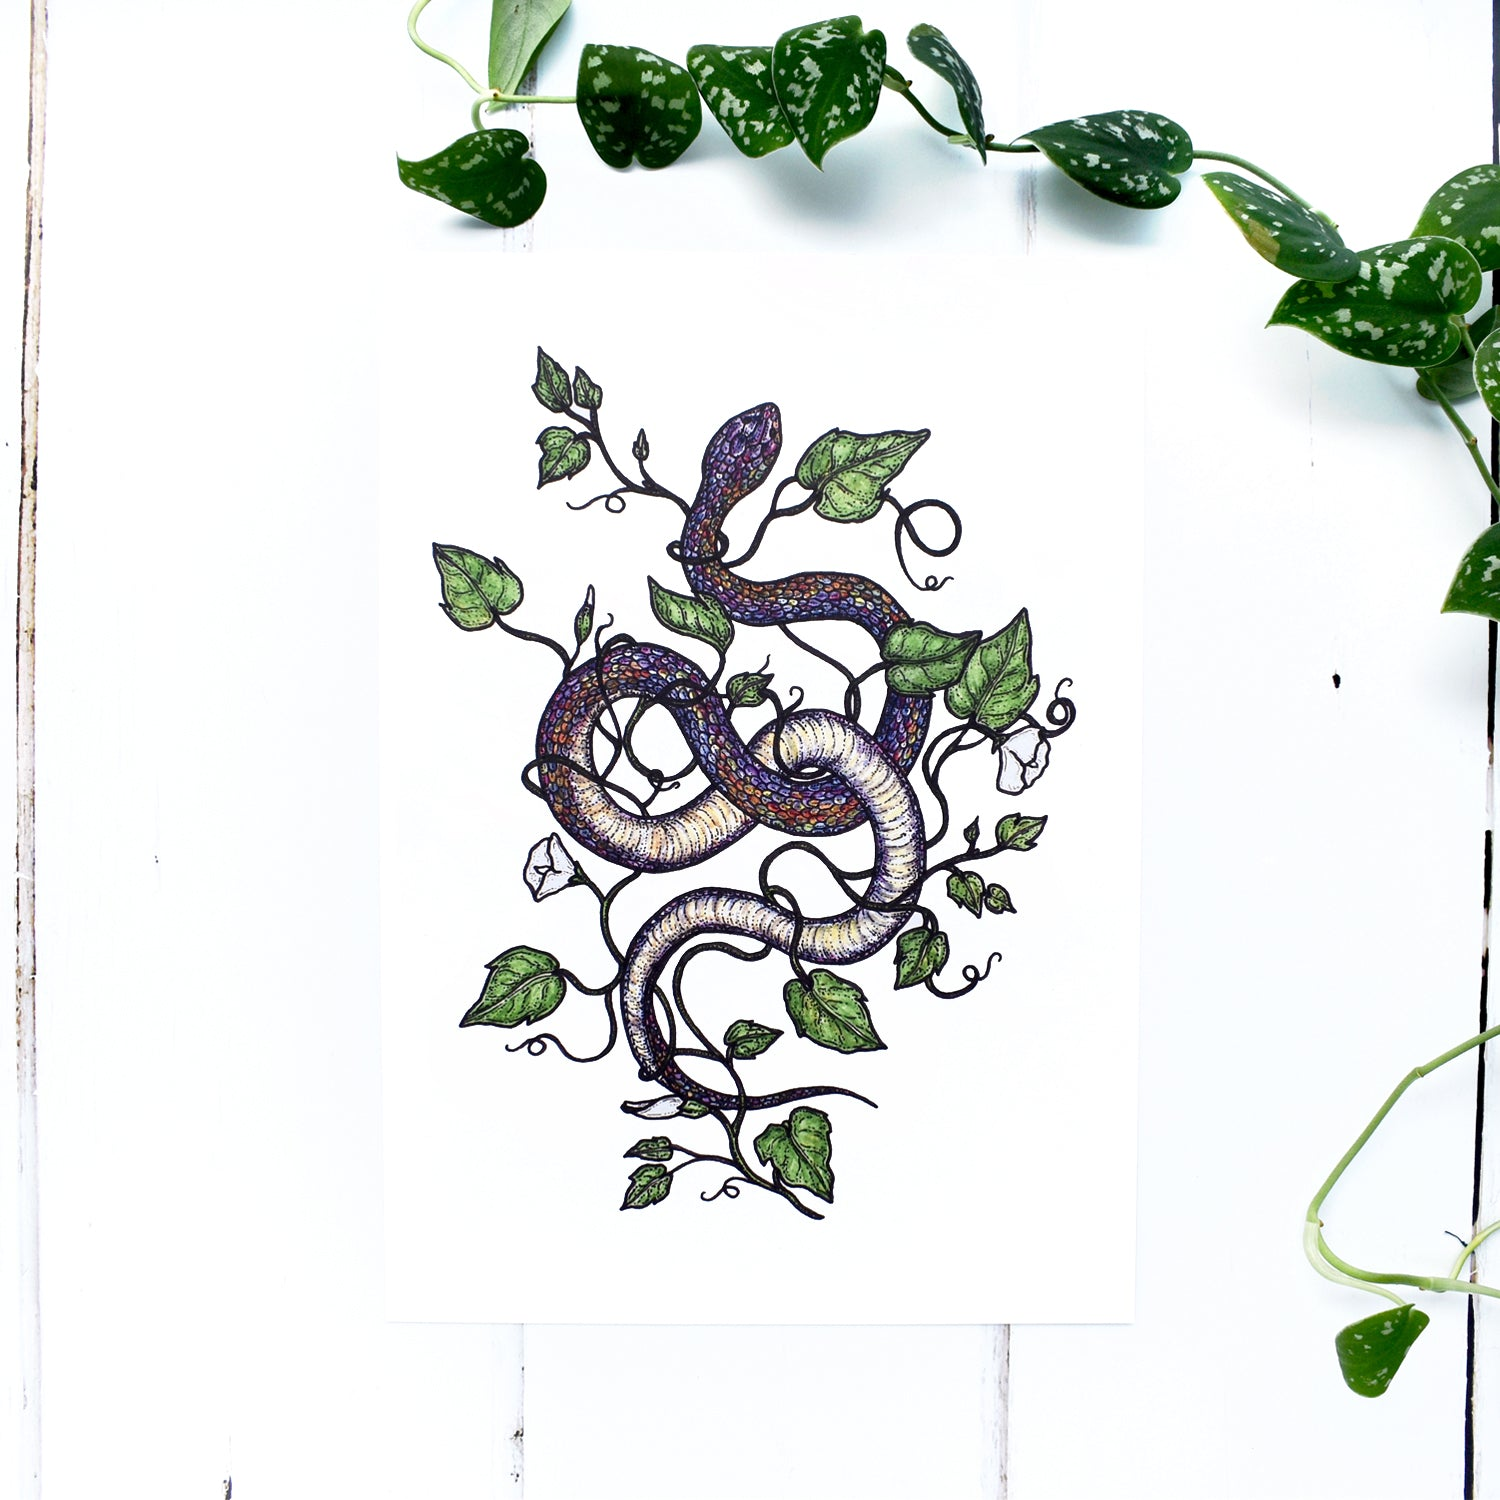 Rainbow Snake and Botanical A4 Print